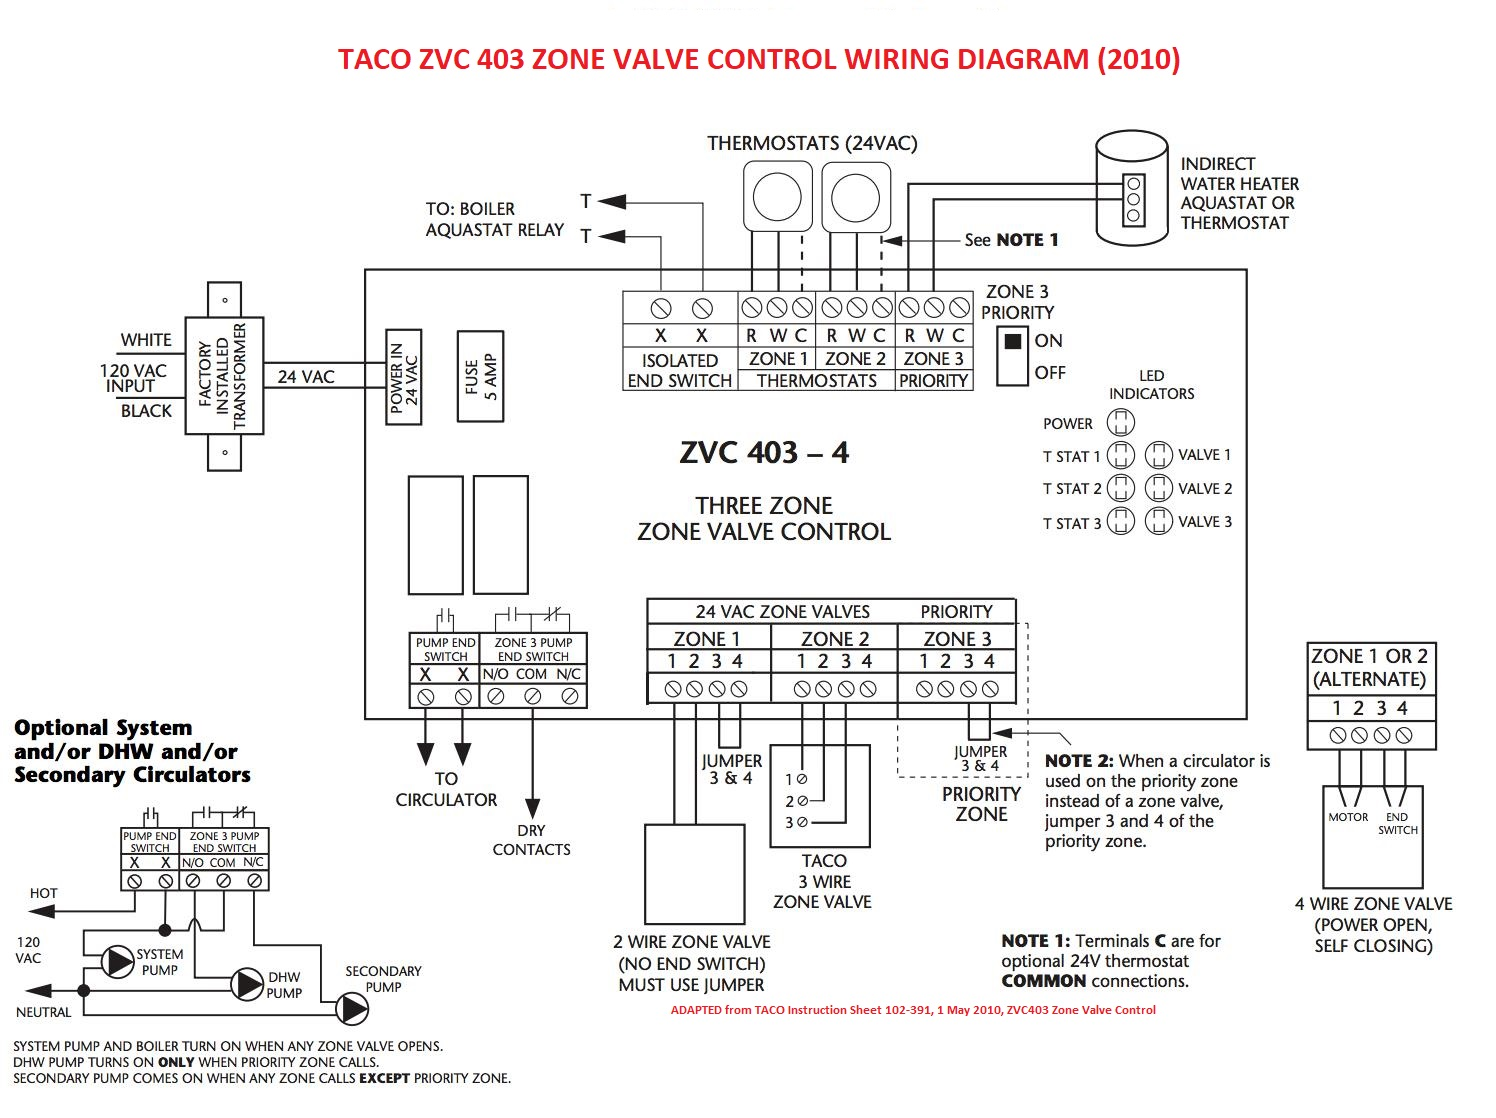 Typical Unit Heater Wiring Diagram Detailed Schematics Garage Zone Valve Installation Instructions Guide To Heating Control Relay